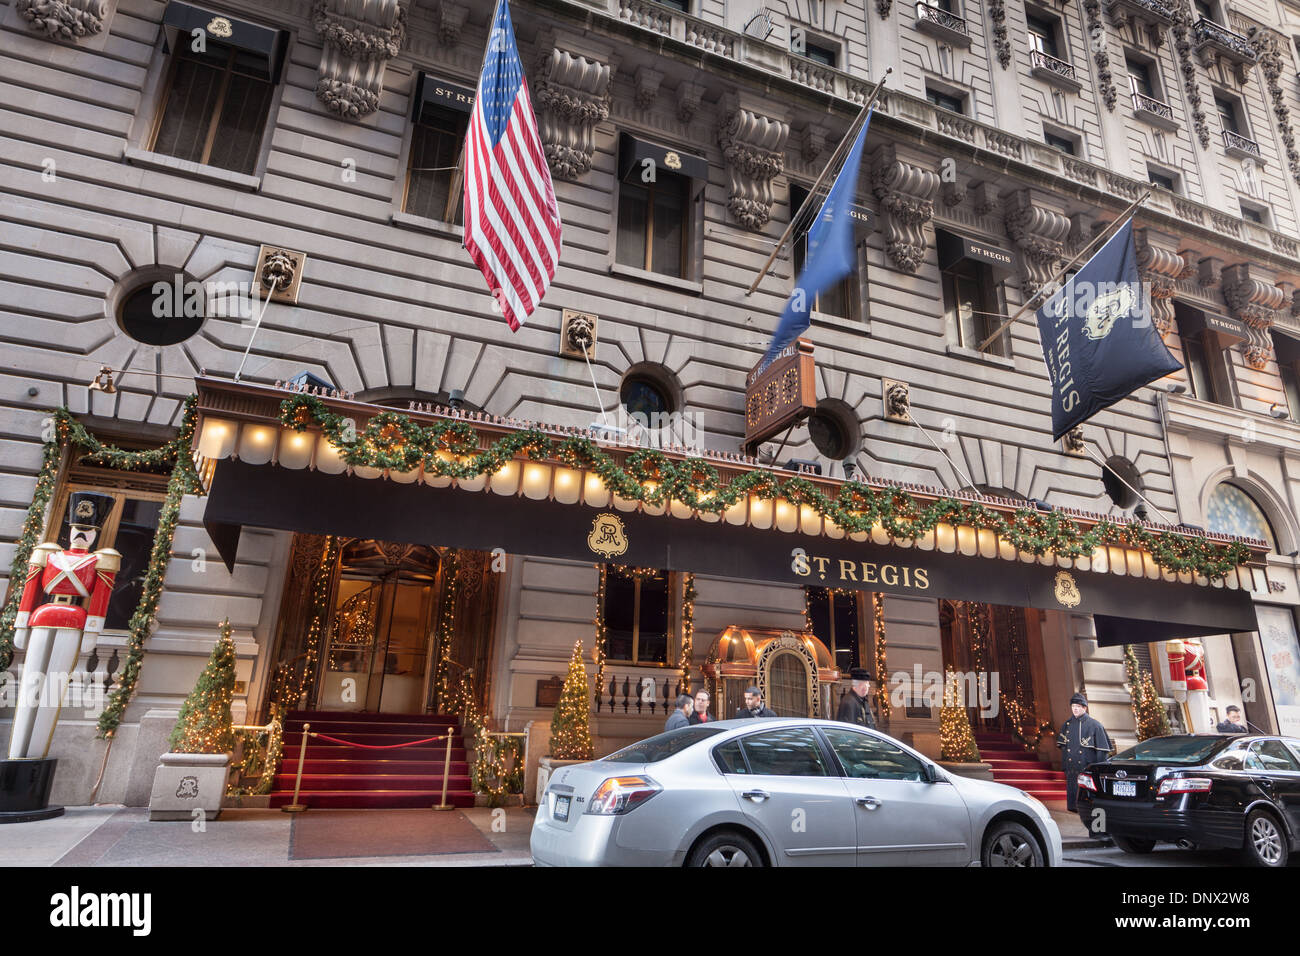 St. Regis Hotel, Beaux-Arts classic luxury hotel planned by John Jacob Astor. Stock Photo